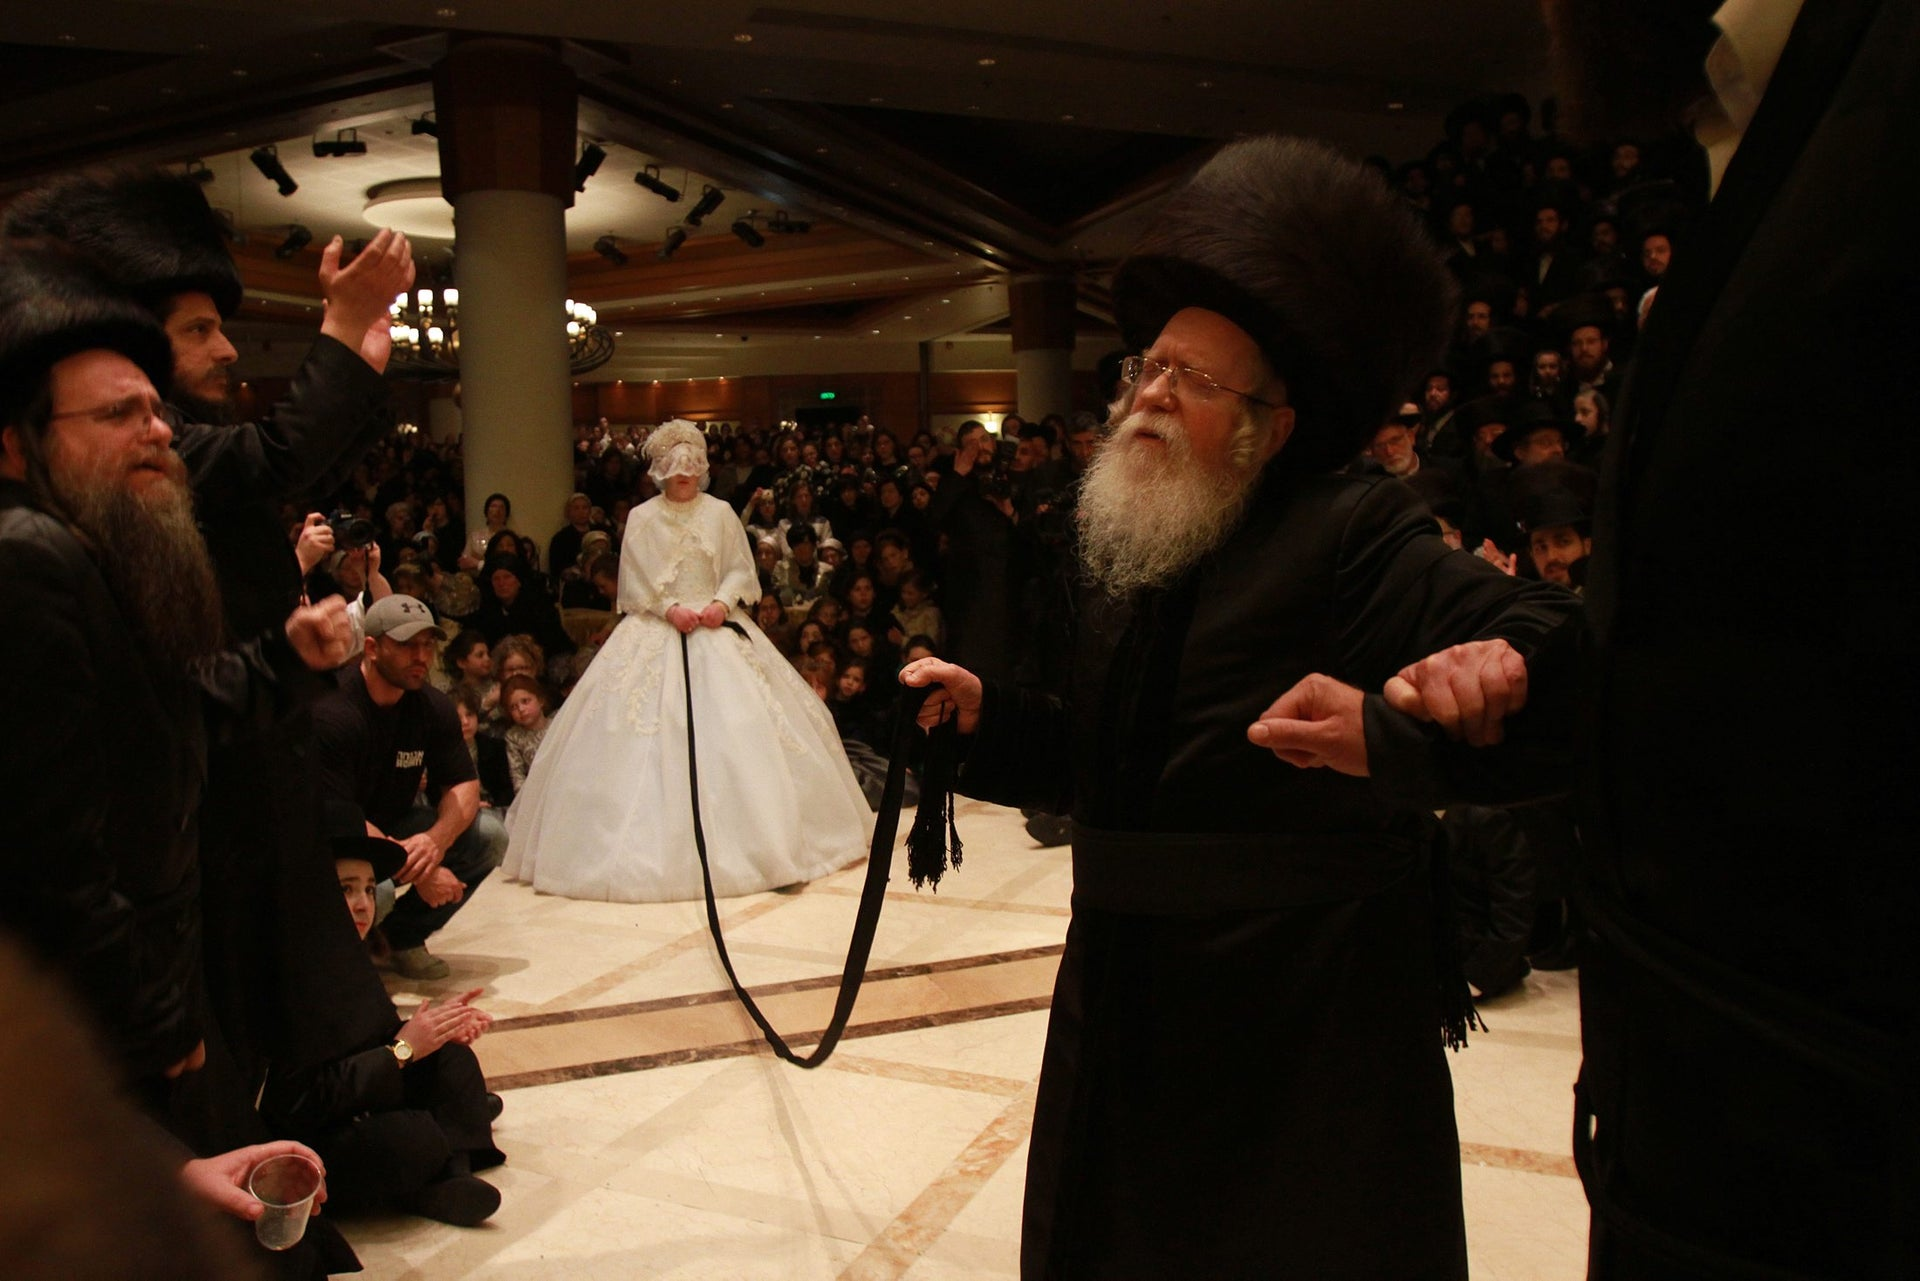 Ultra orthodox Jews attend the wedding of the Son of the Rabbi of Sassov (Hasidic dynasty) and the granddaughter Admor Rabbi Kretshnif (Hasidic dynasty) in Bnei Brak, February 1, 2016.